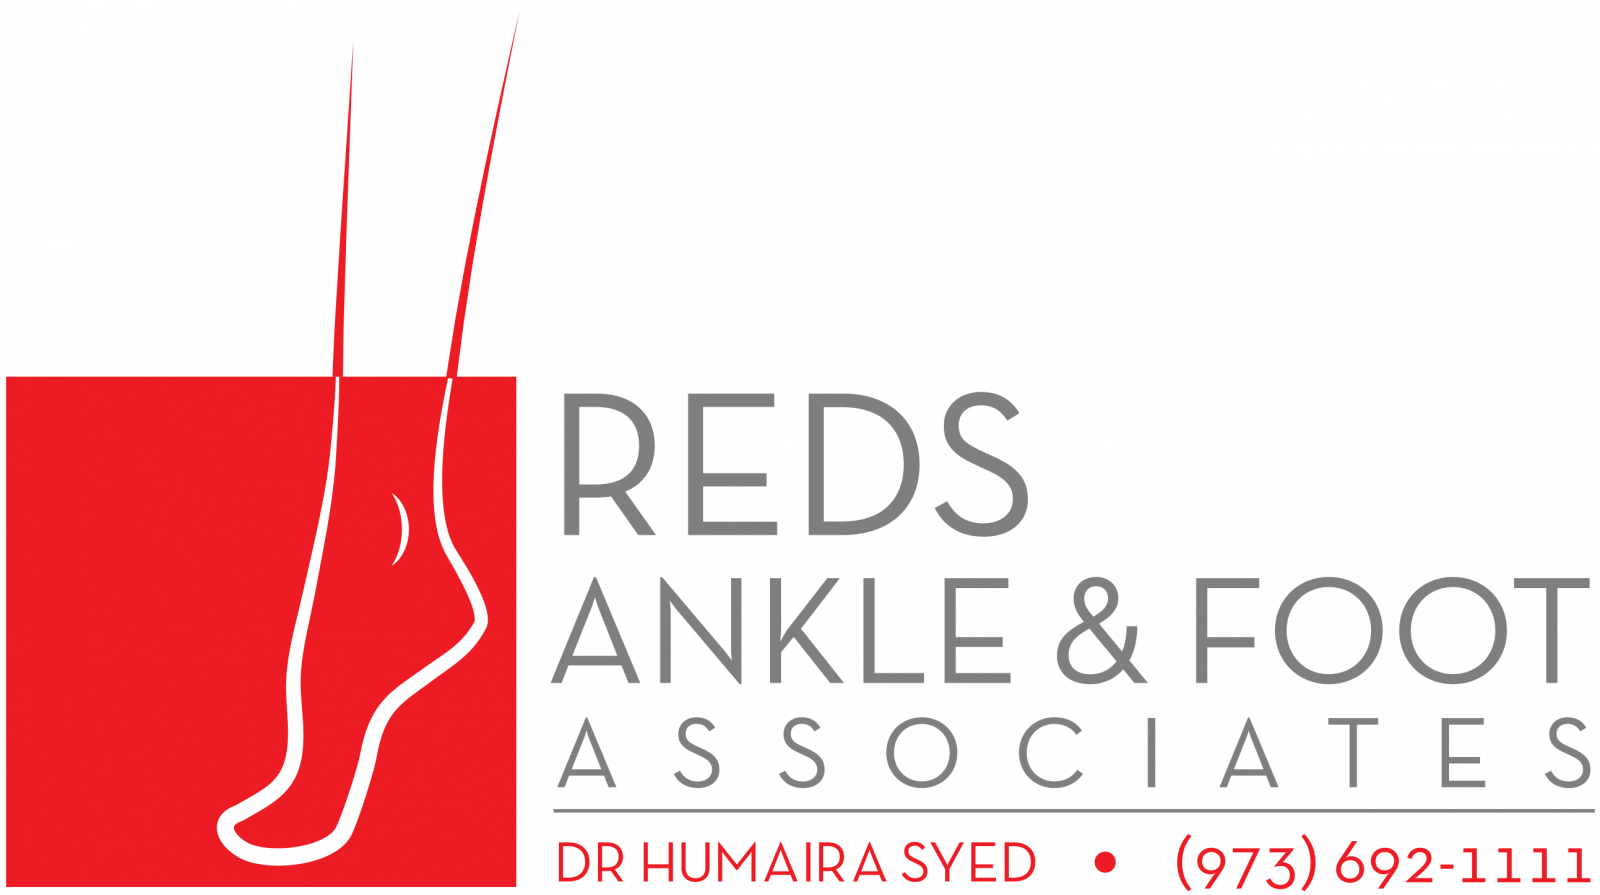 Reds Ankle and Foot Associates in Fort Lee NJ, Wayne NJ, Clifton NJ